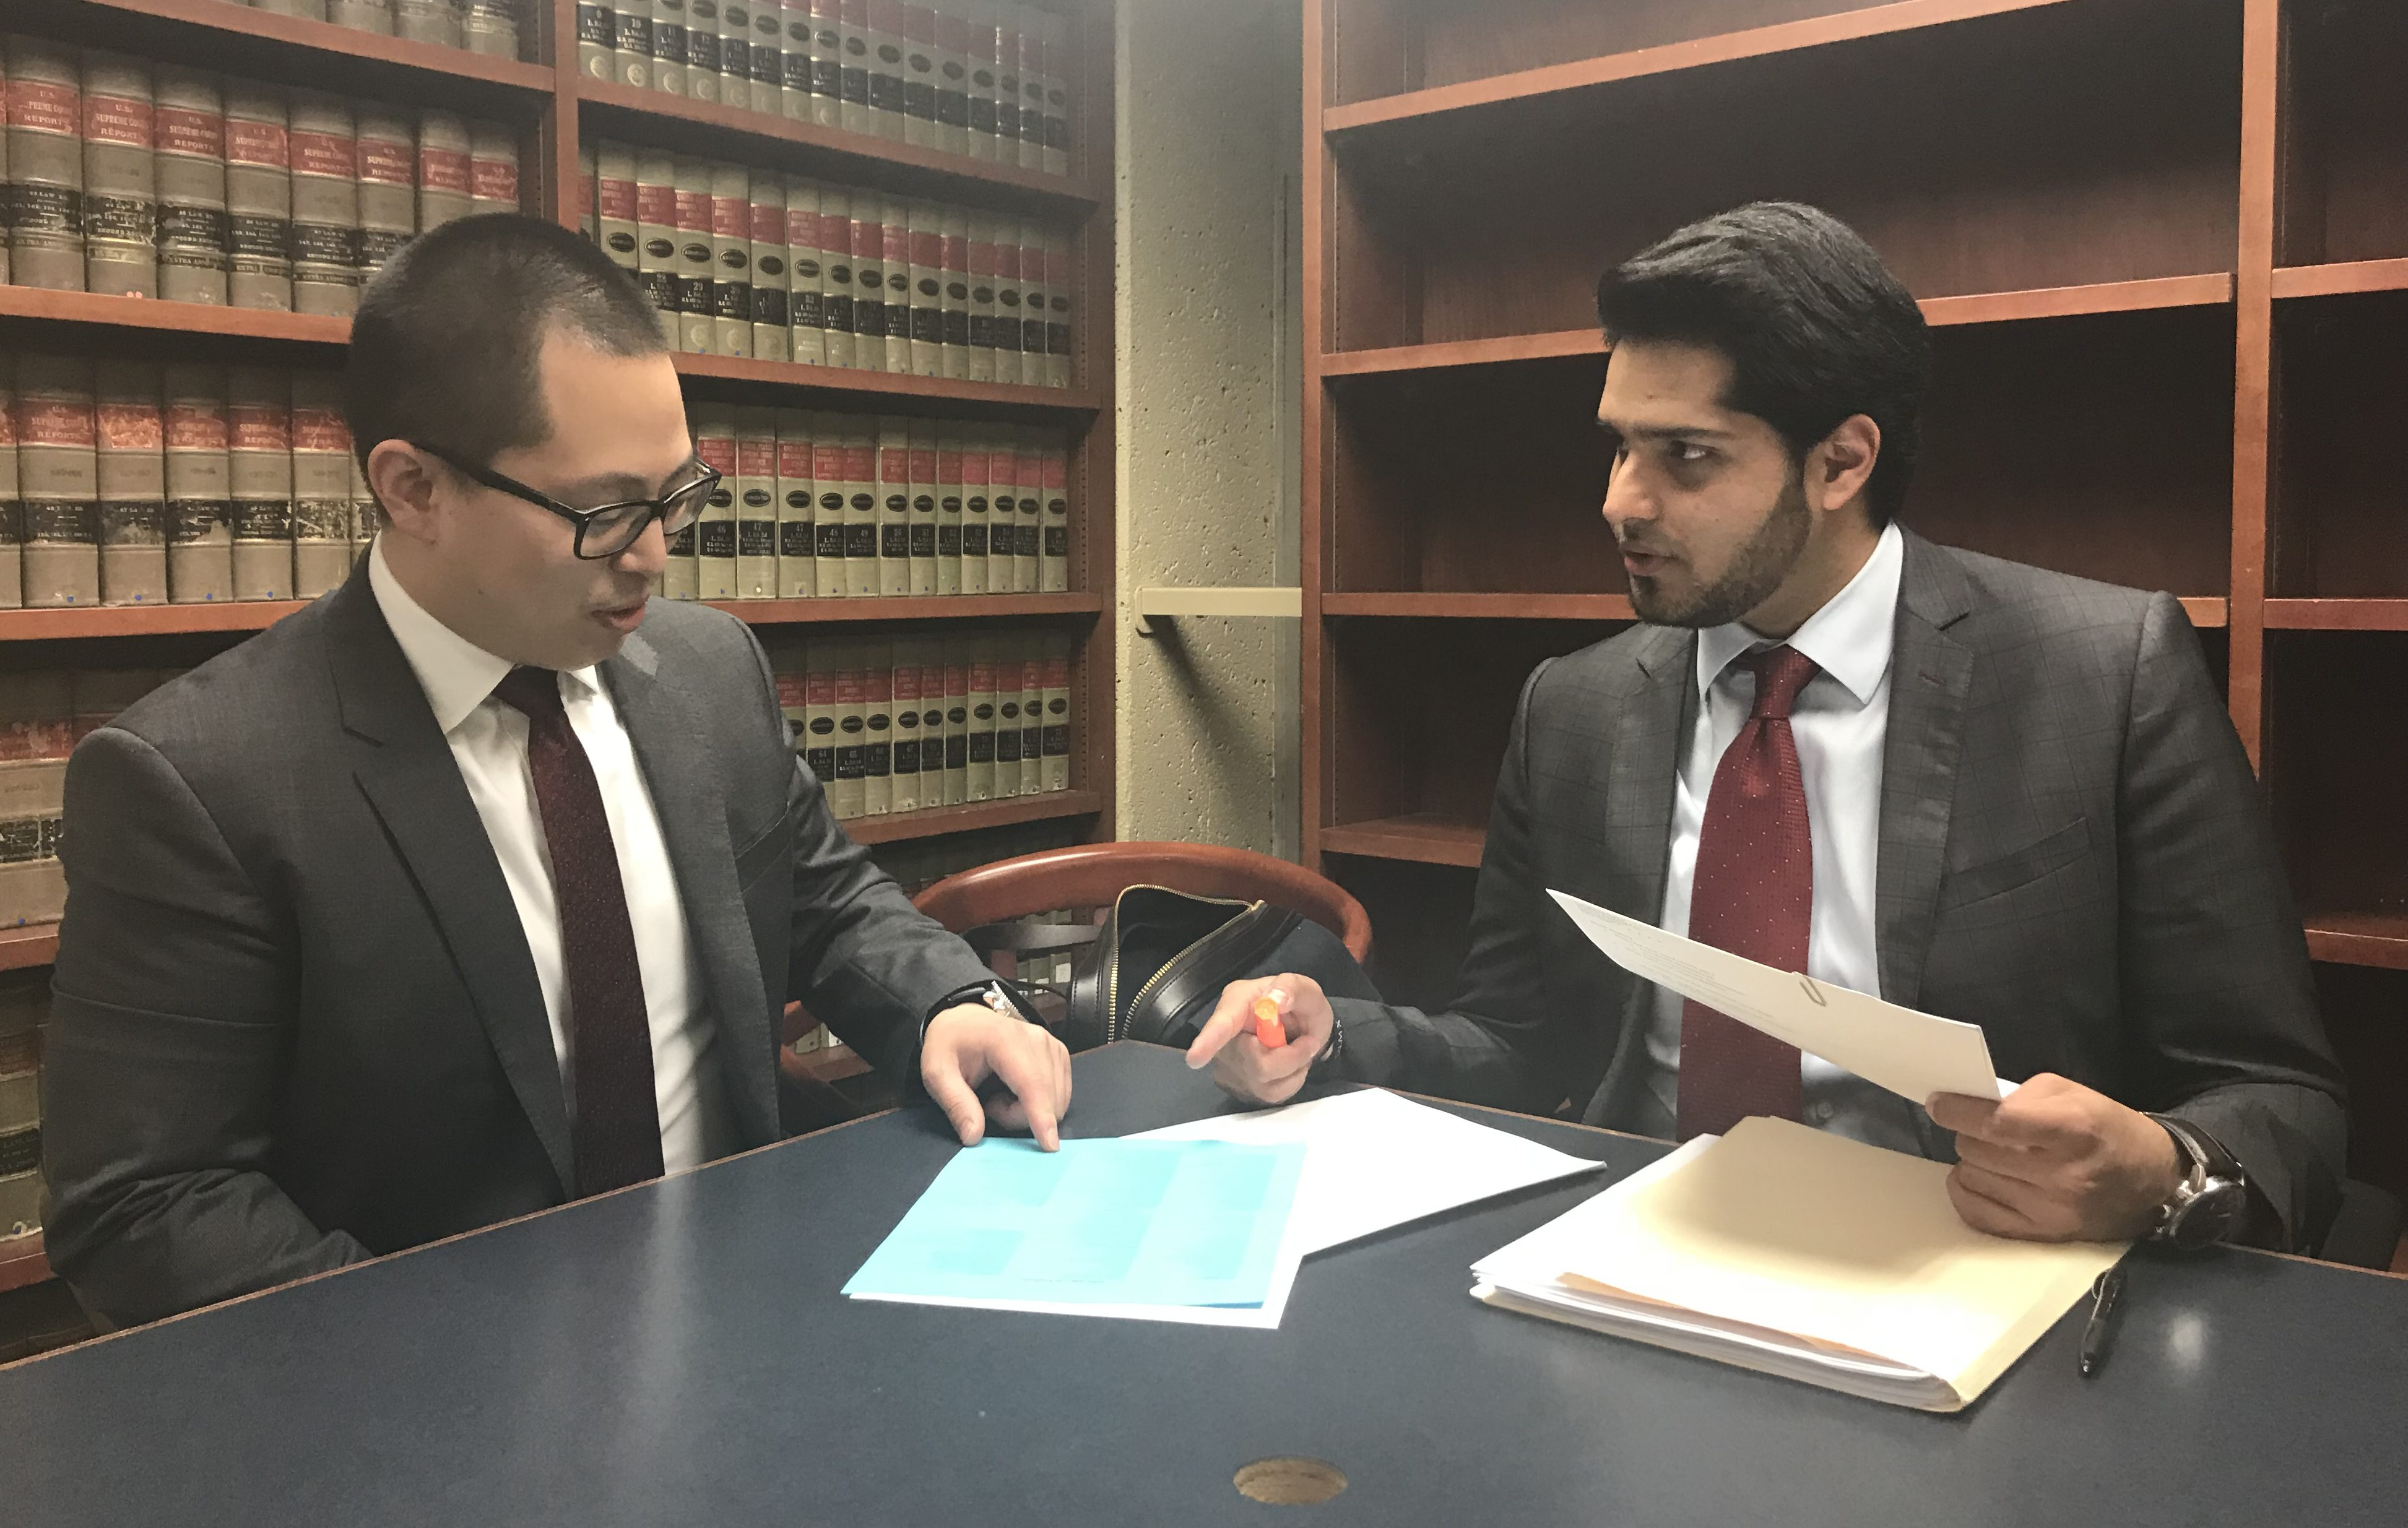 CAIR-SFBA Legal Services Staff Reviewing Documents